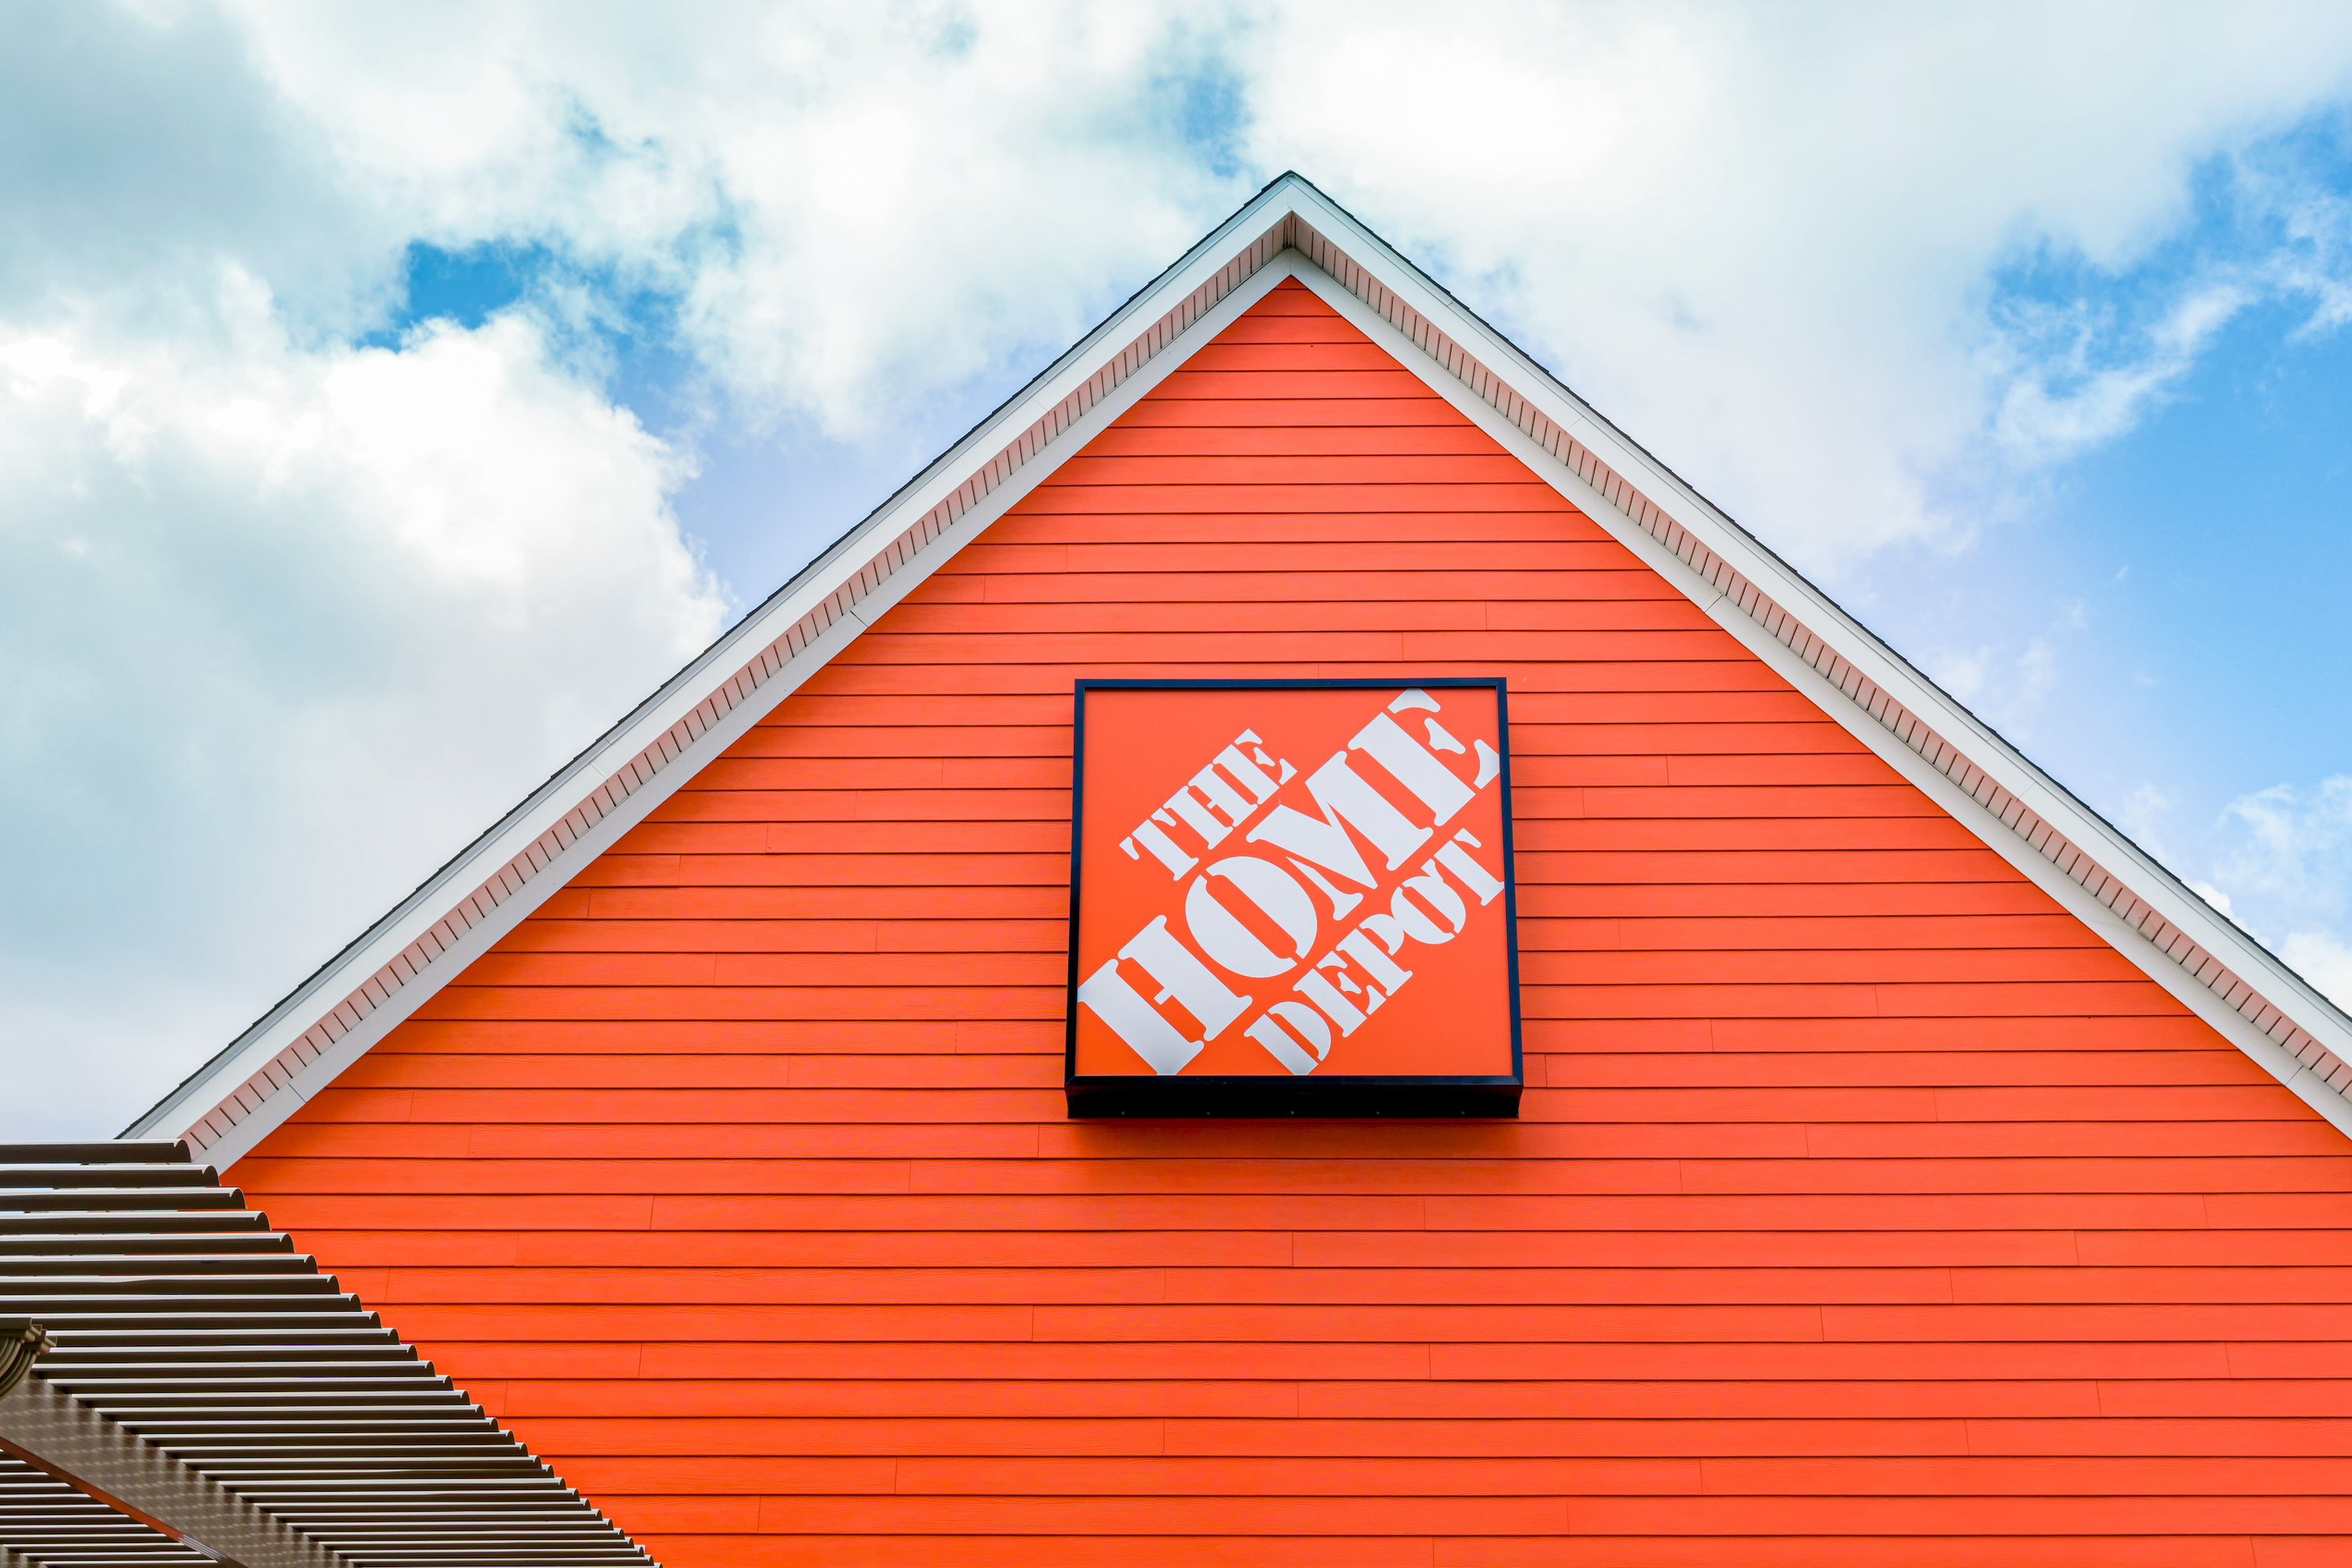 The Friday Five: Go Big or Go Home Depot — Walmart does both with first GoLocal customer